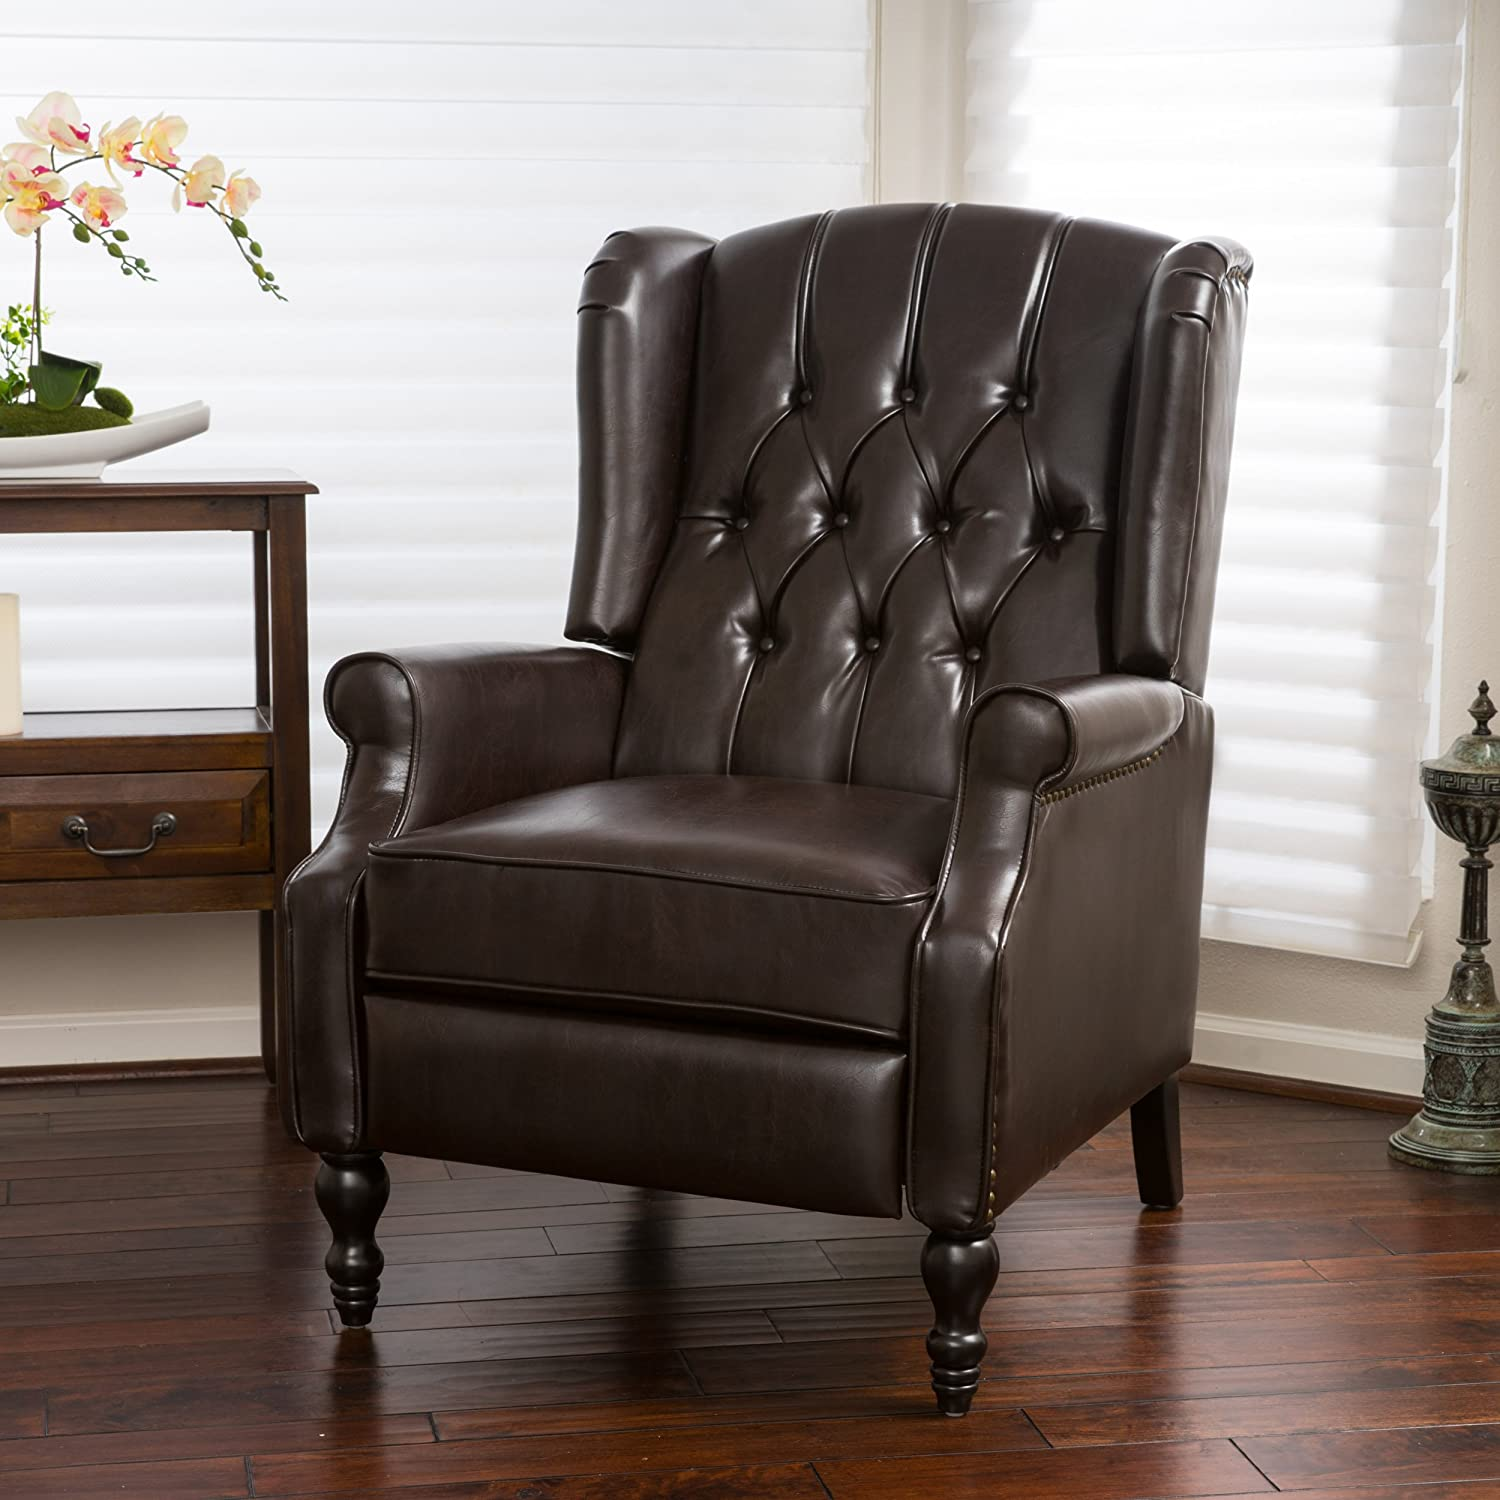 Elizabeth Tufted Brown Bonded Leather Recliner Arm Chair Image